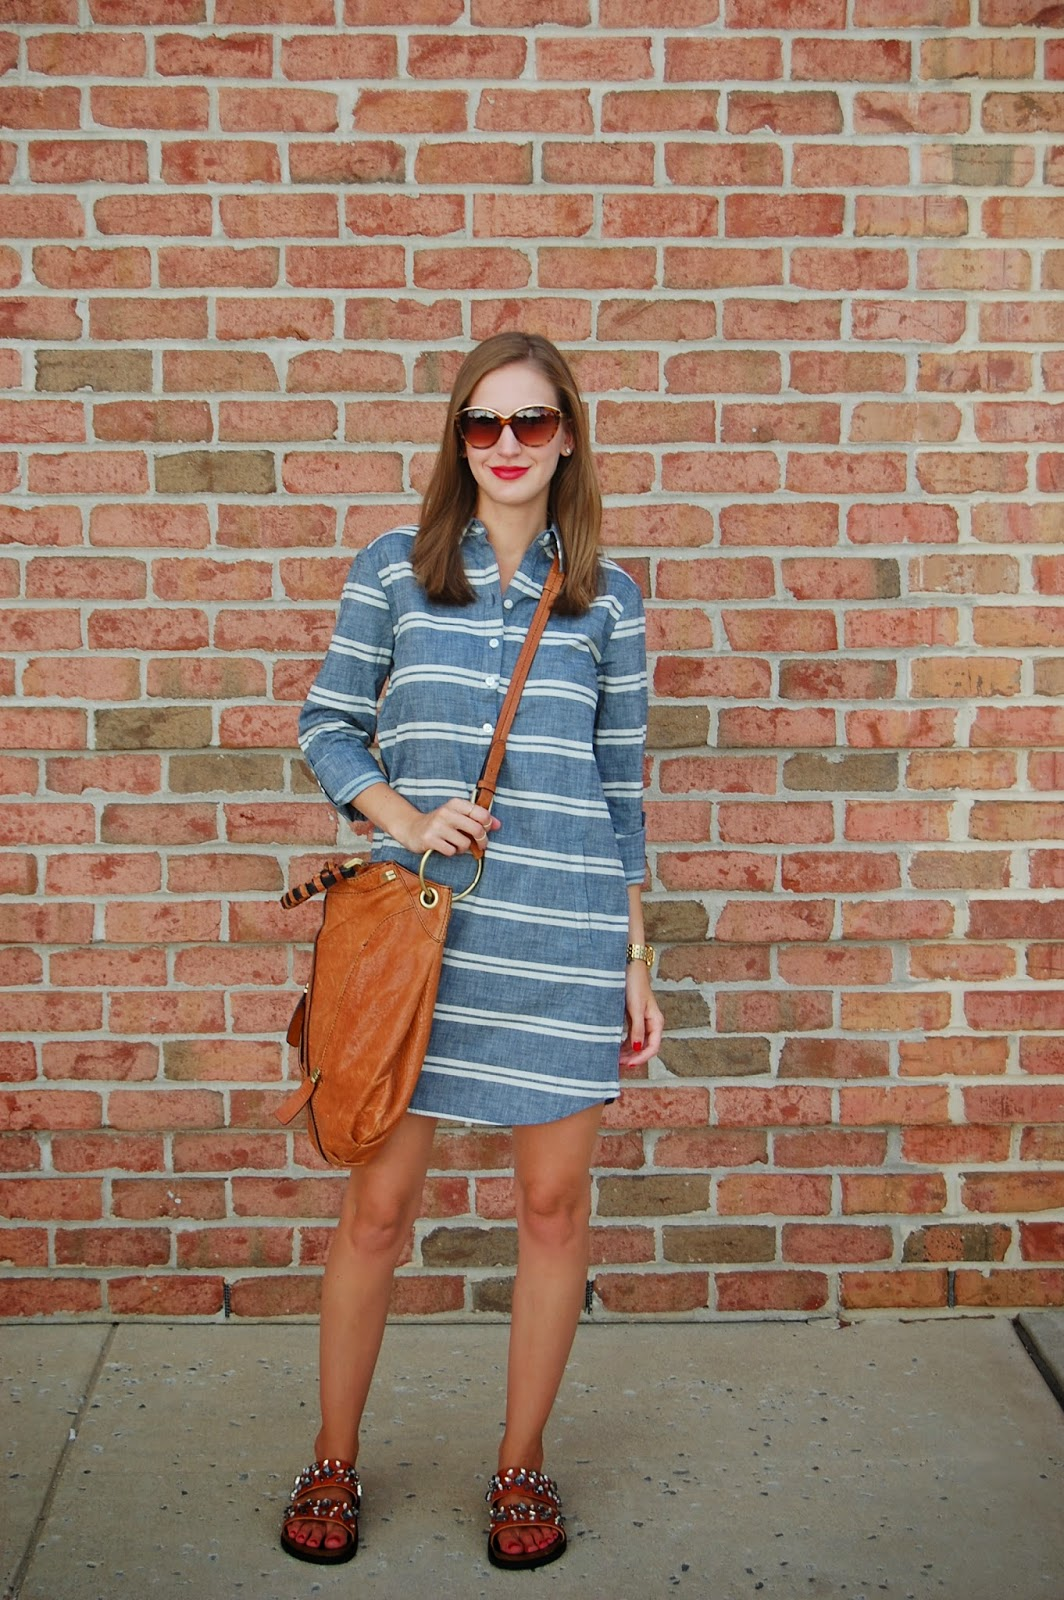 Wearing Loft Striped Shirt dress, Oryany cross body bag, Zara bejeweled sandals, casual weekend outfit